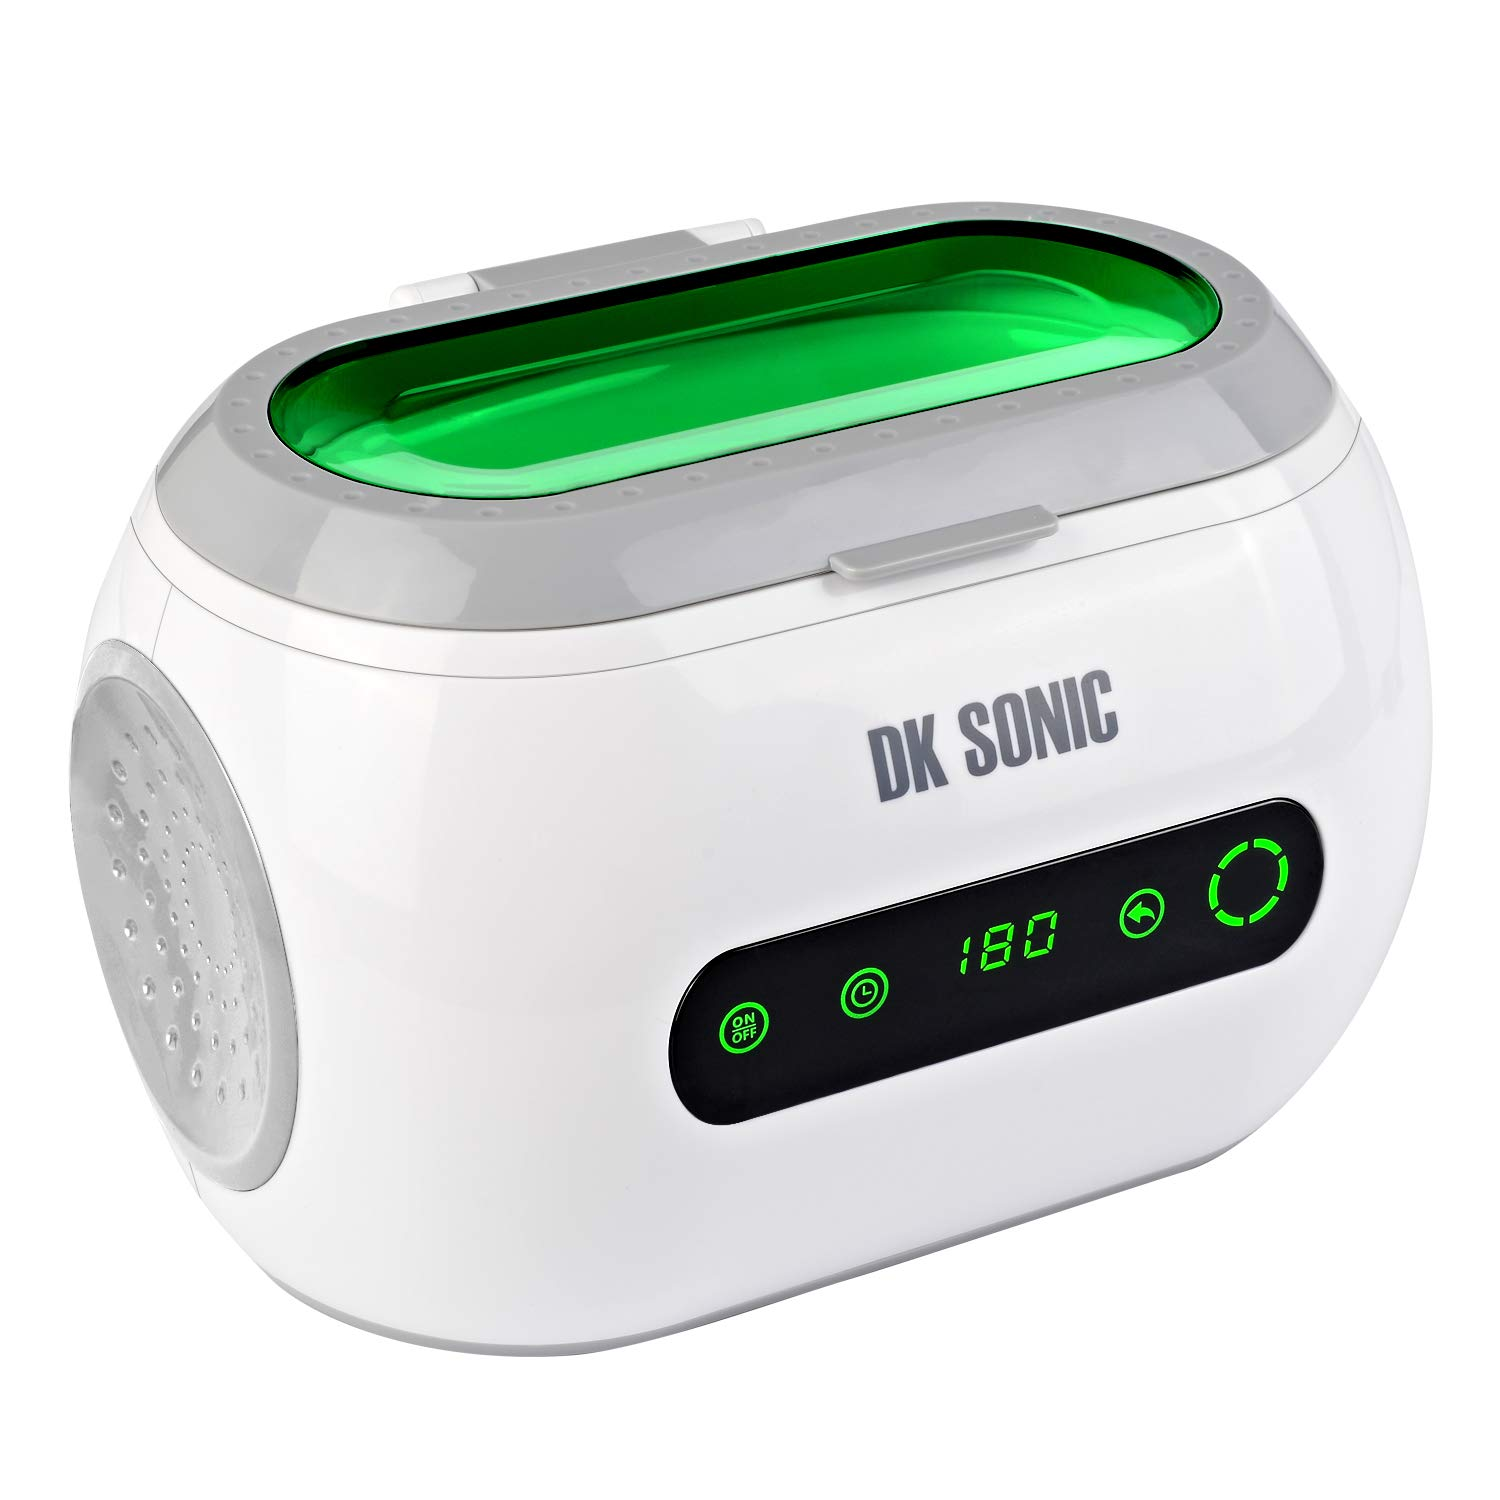 DK SONIC Professional Ultrasonic Jewelry Cleaner with Digital Timer for Eyeglasses, Rings, Coins by DK SONIC (Image #1)